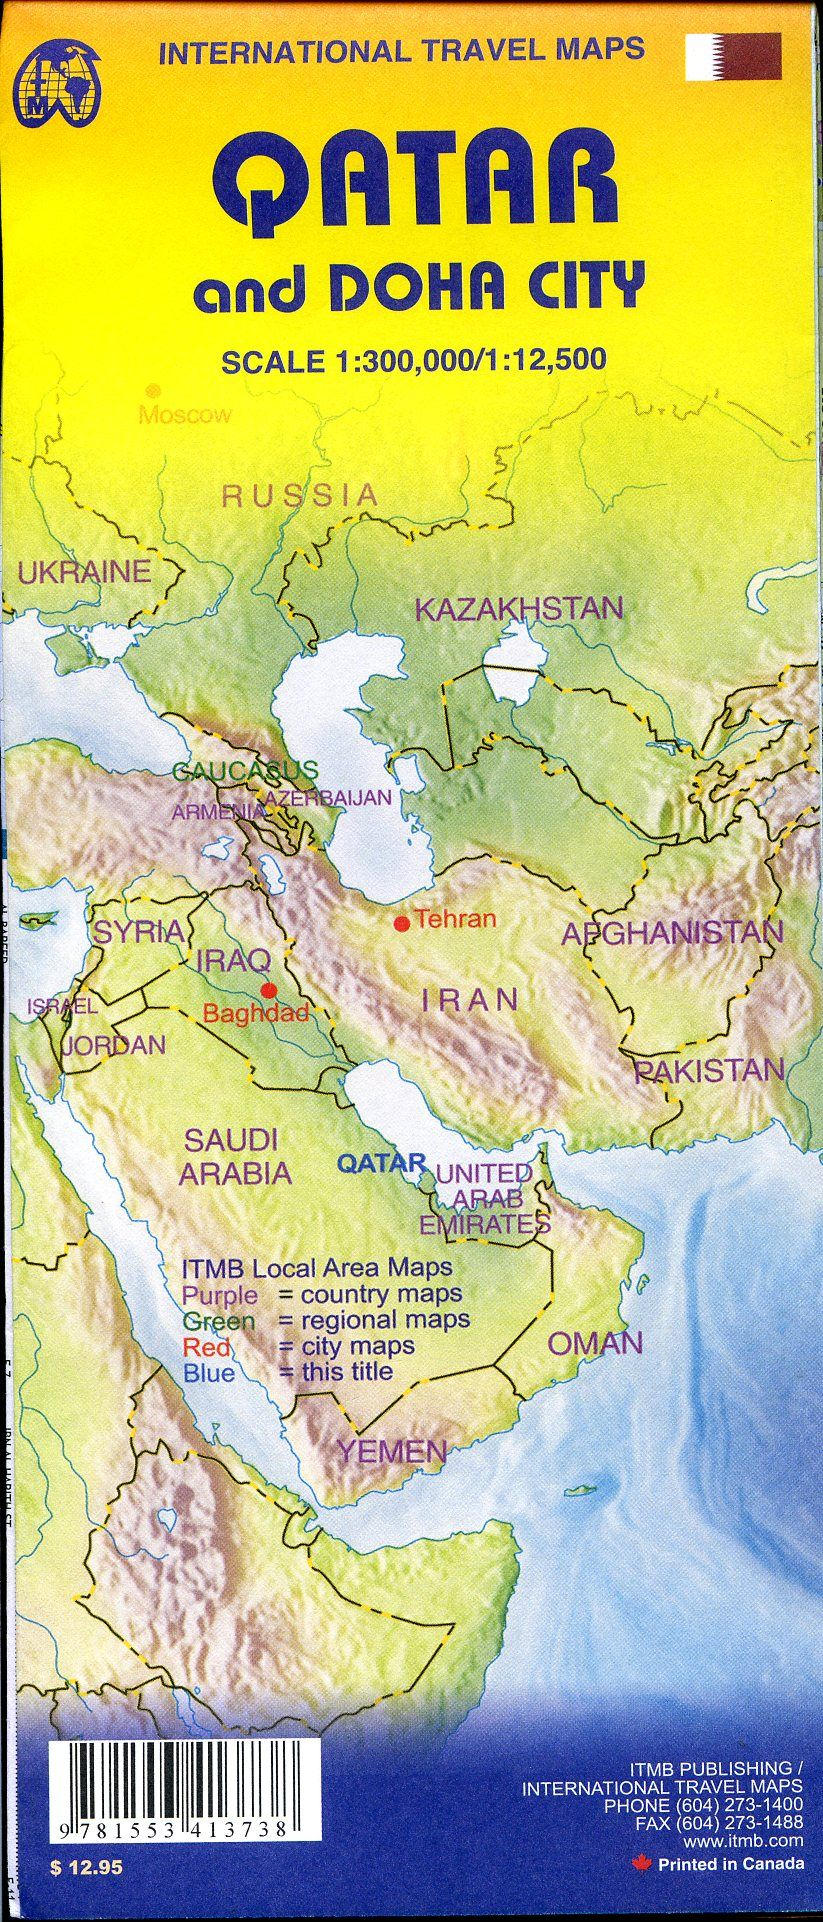 Qatar and Doha City Travel Reference map on